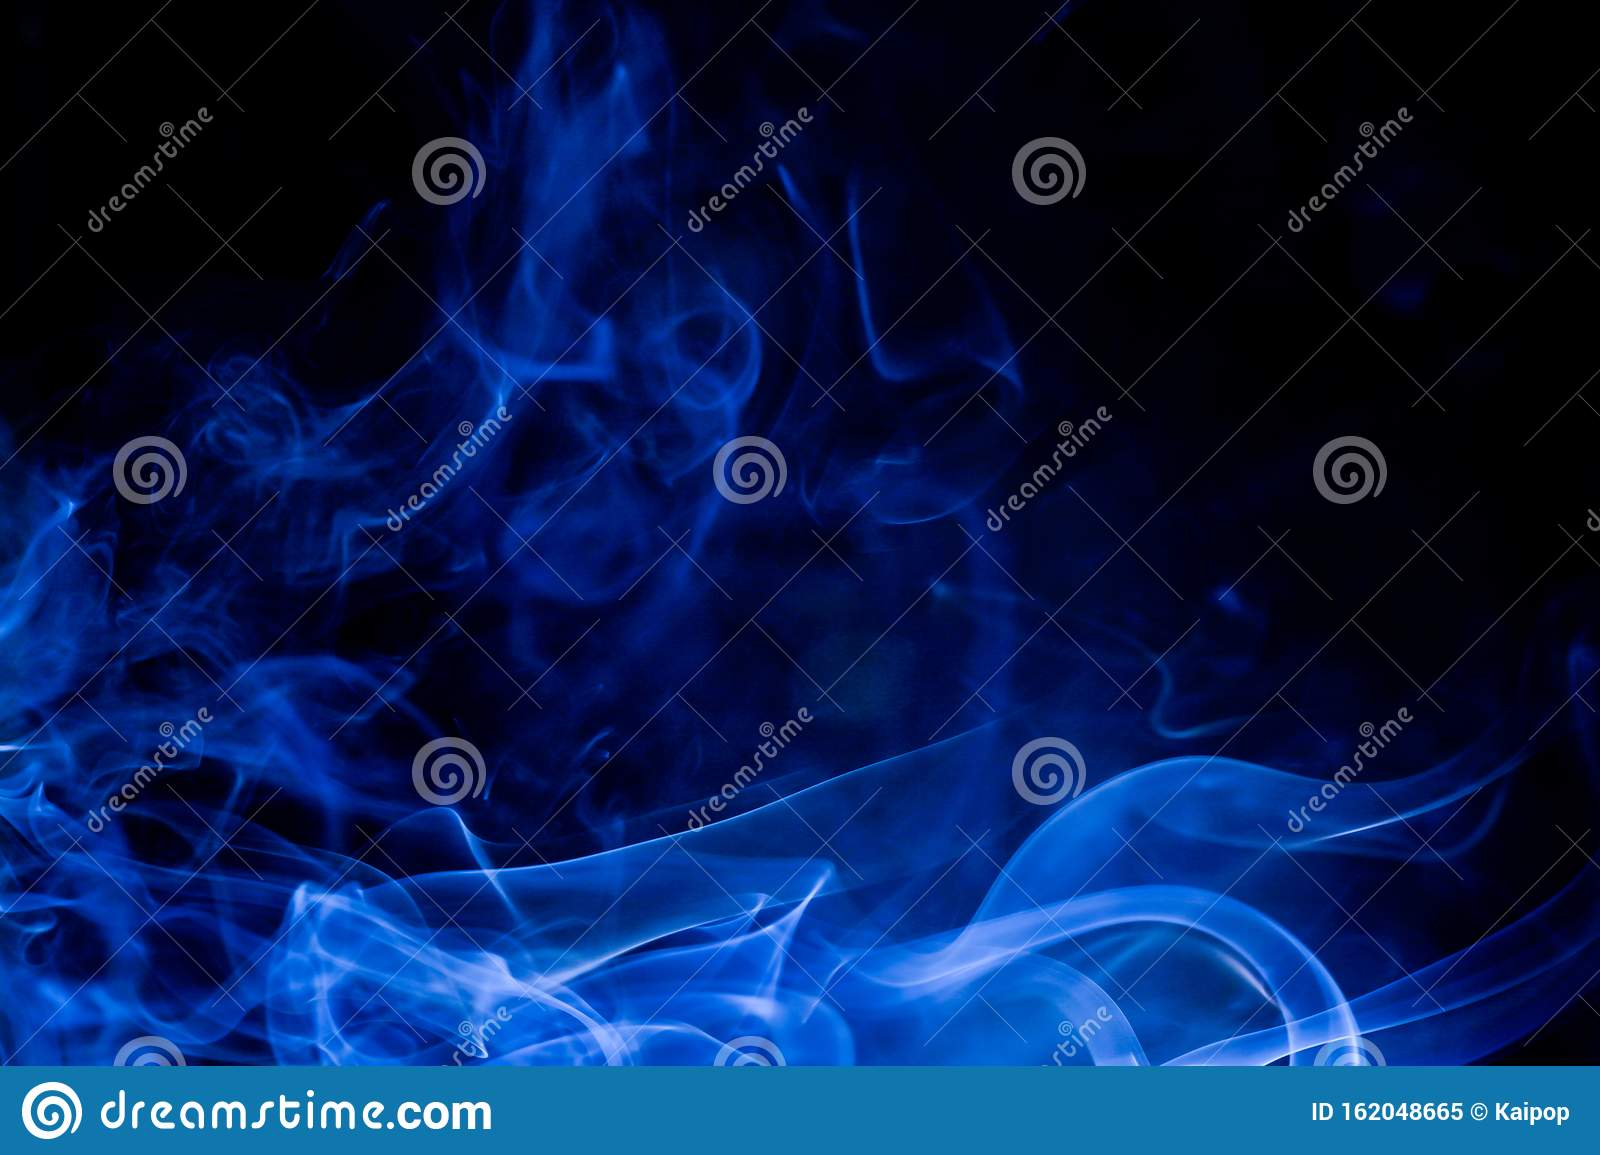 Blue toxic fumes movement on a black background